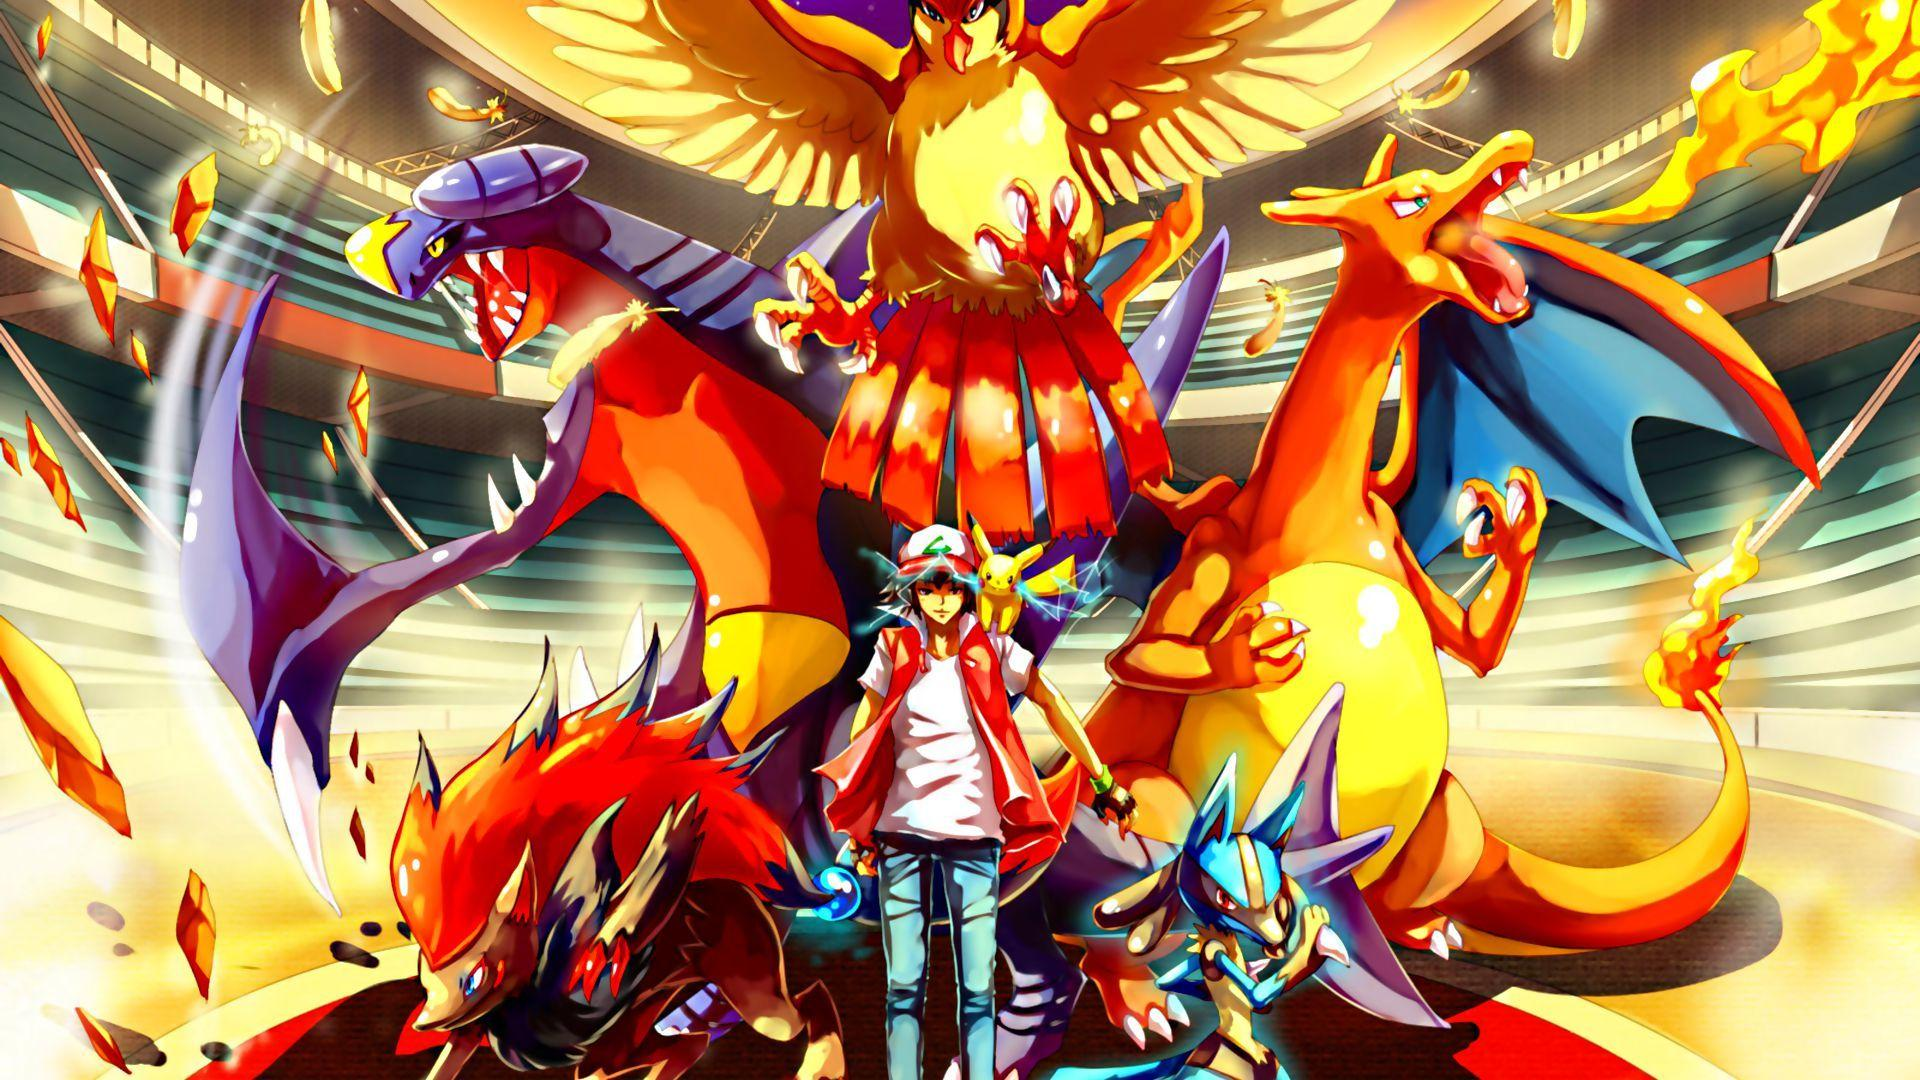 Hd Pokemon Wallpapers